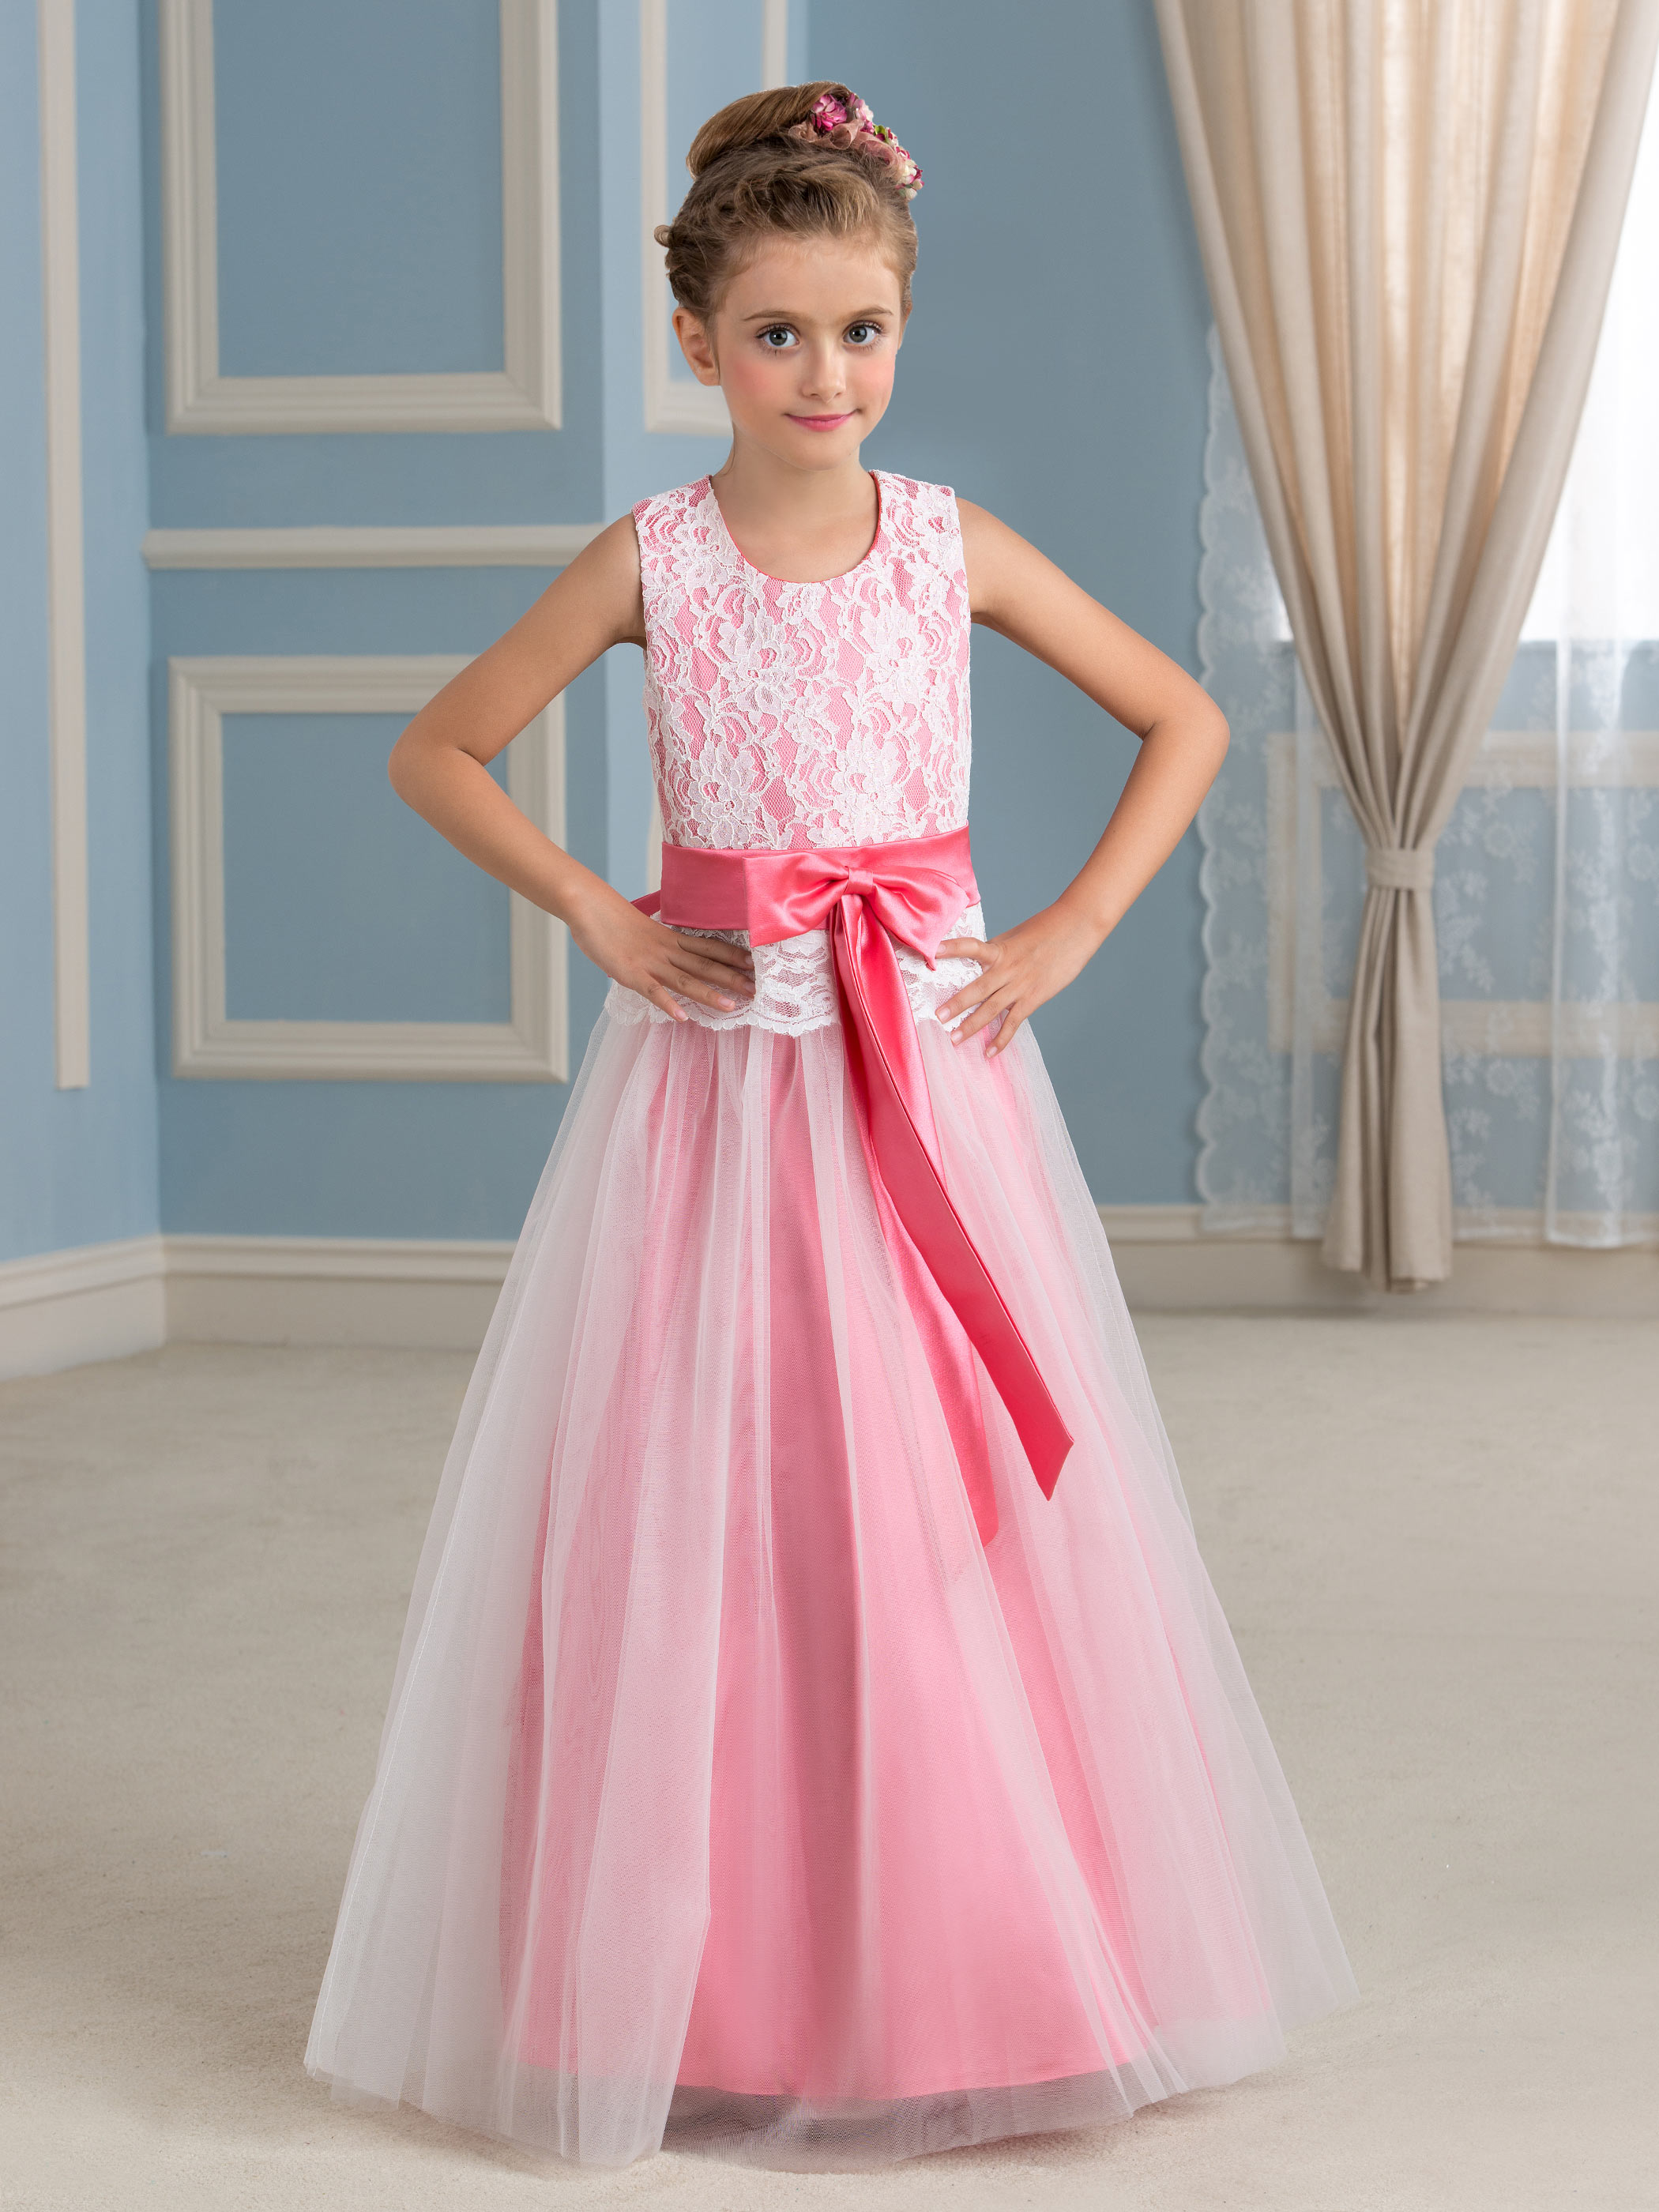 b60c66a99716 Cute Little Girl Dress